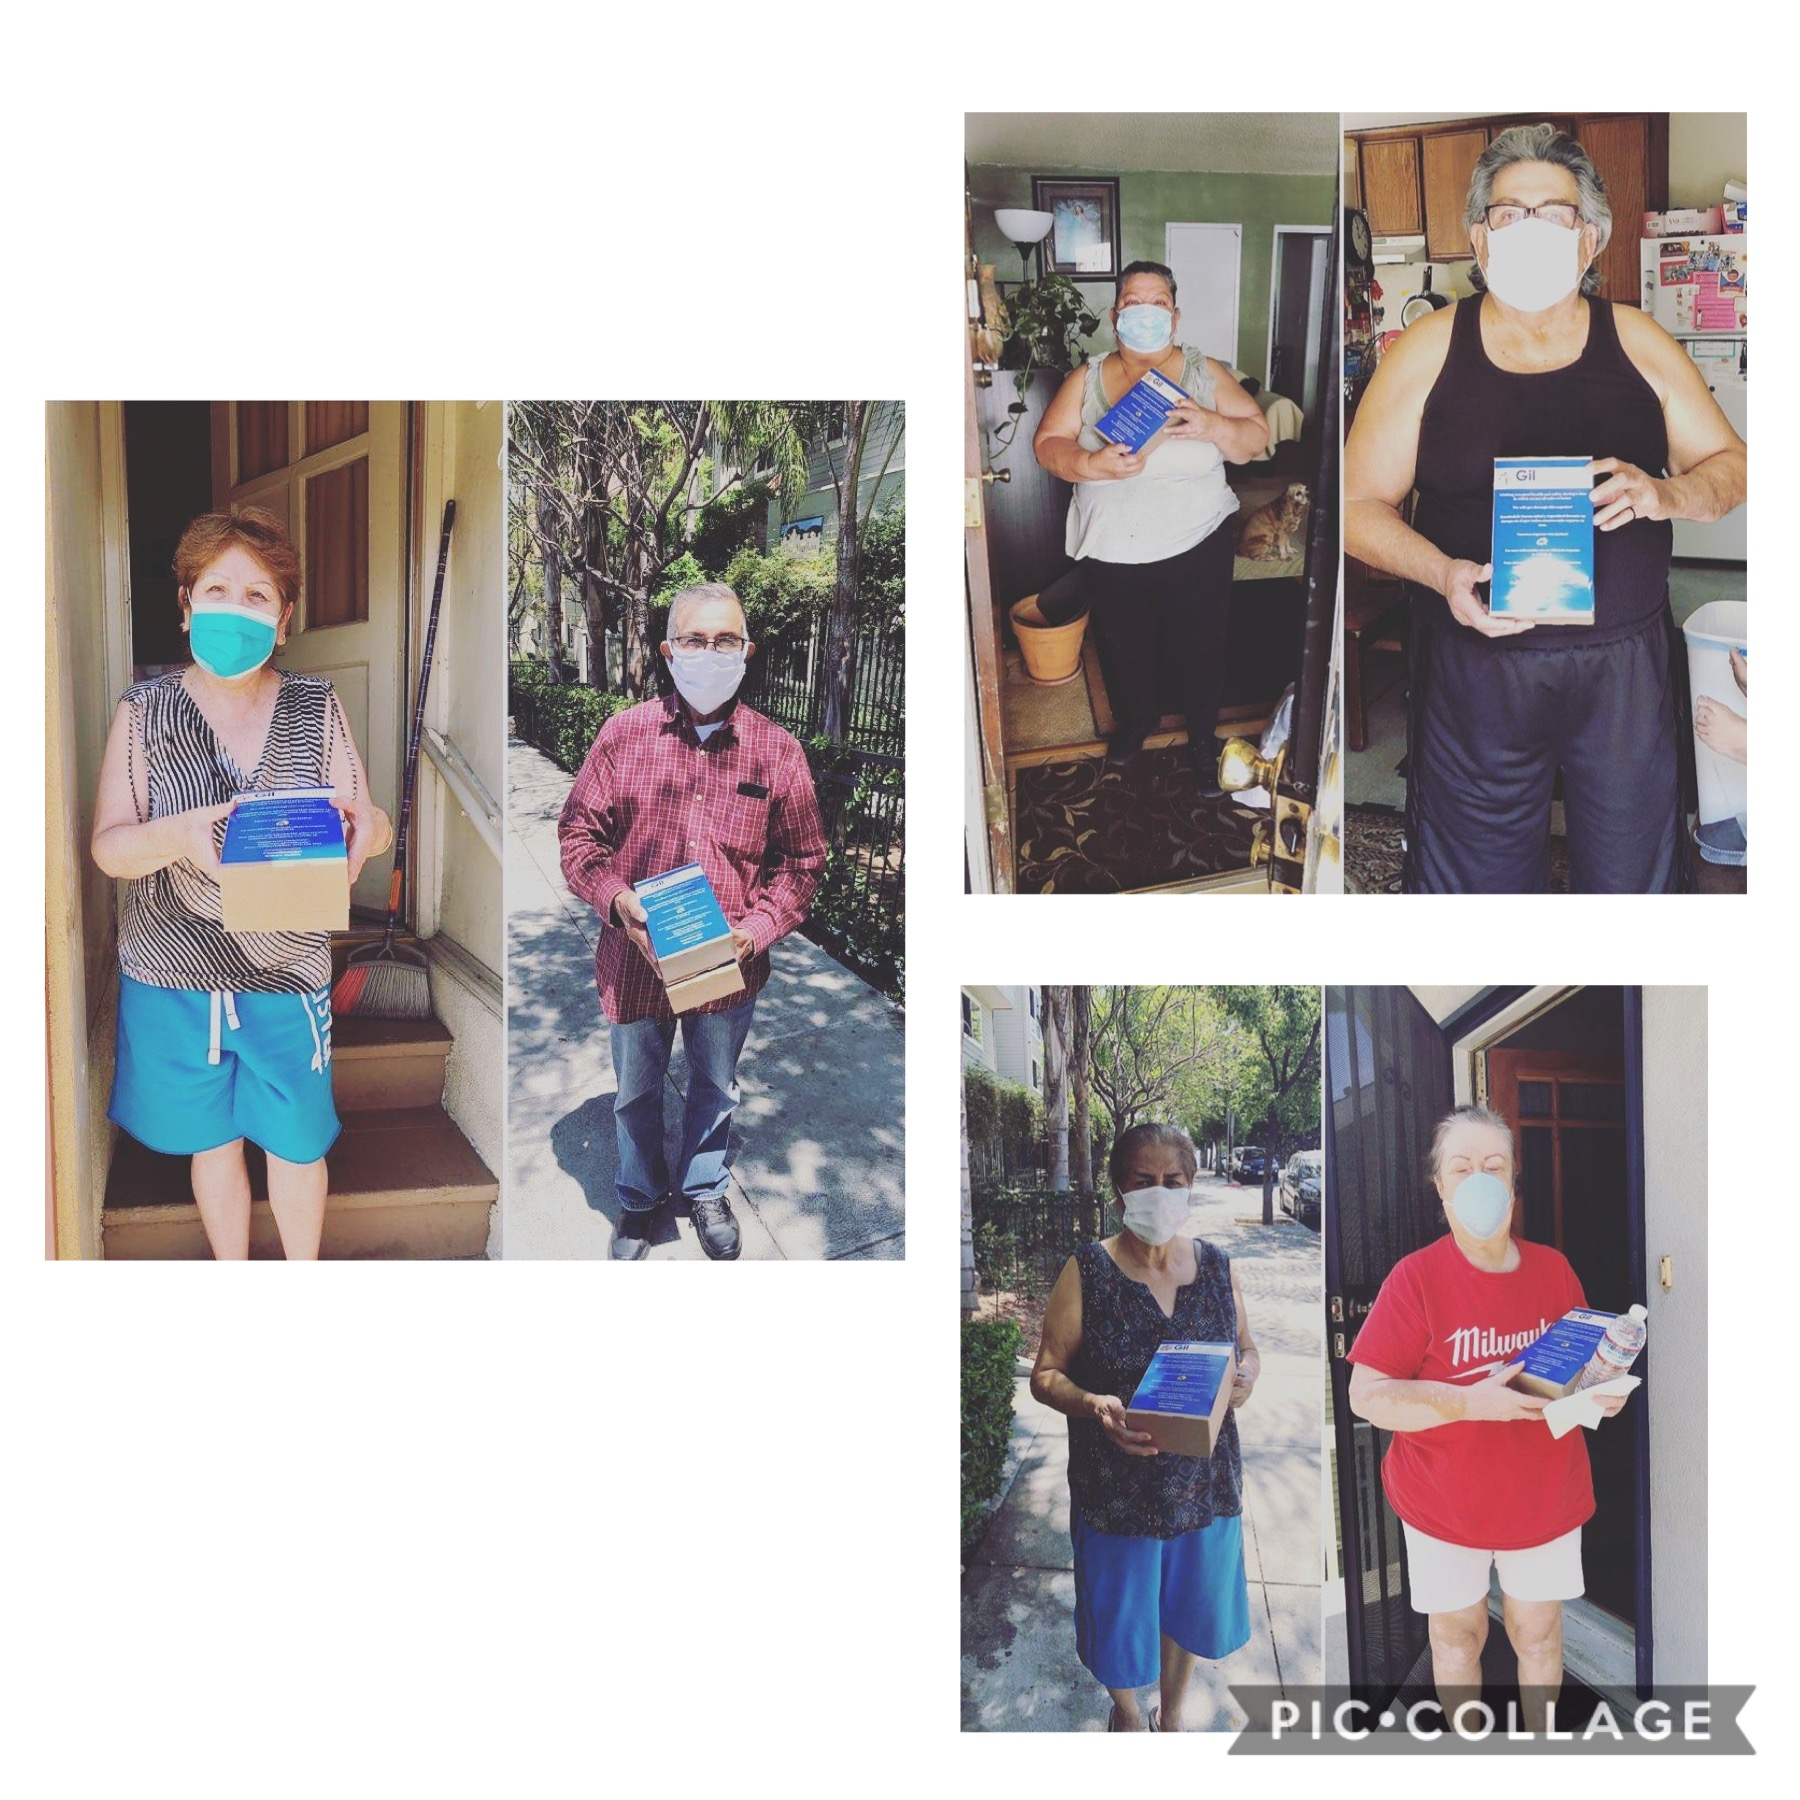 Angelina Apts residents receive Burgerlords Meals Collage #2 - 5-11-2020